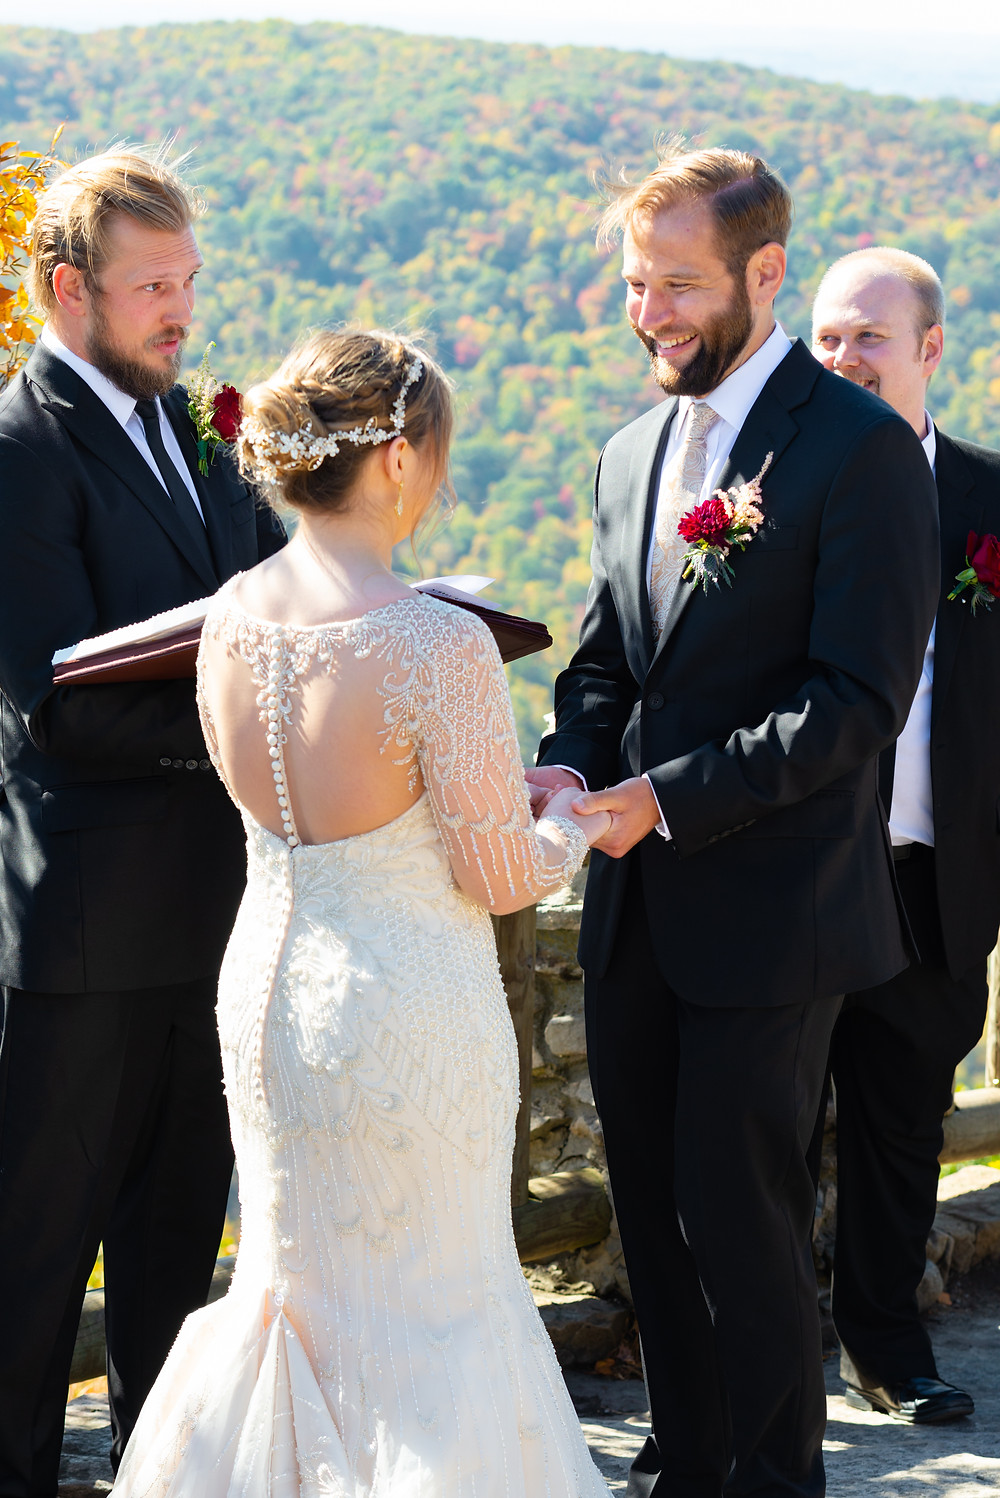 Bride and groom saying their vows at Coopers Rock State Park